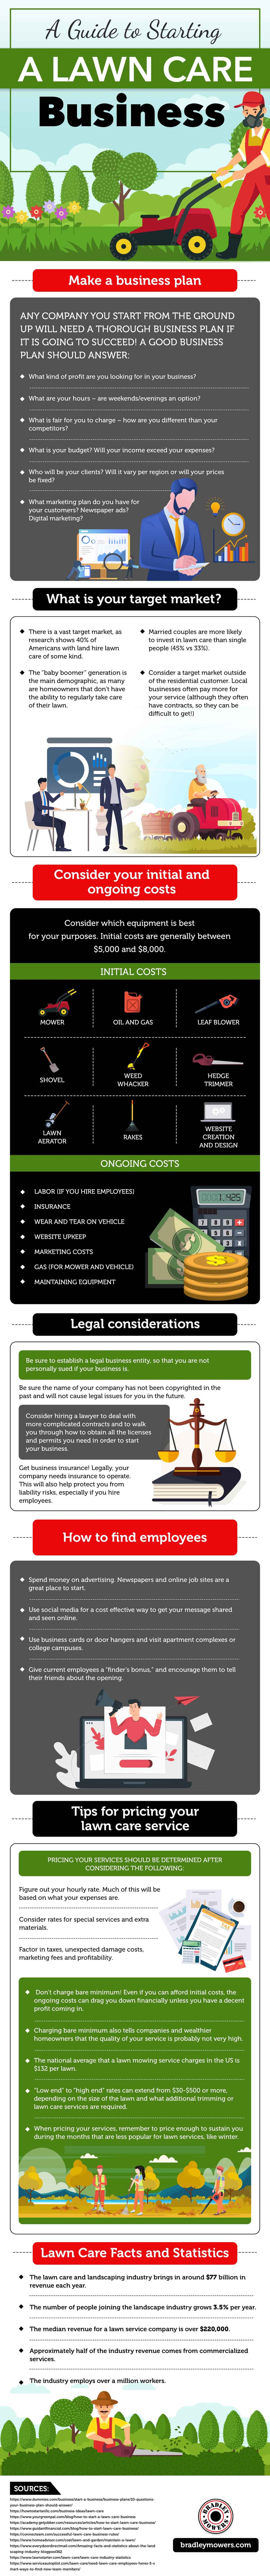 A Guide to Starting a Lawn Care Business #infographic